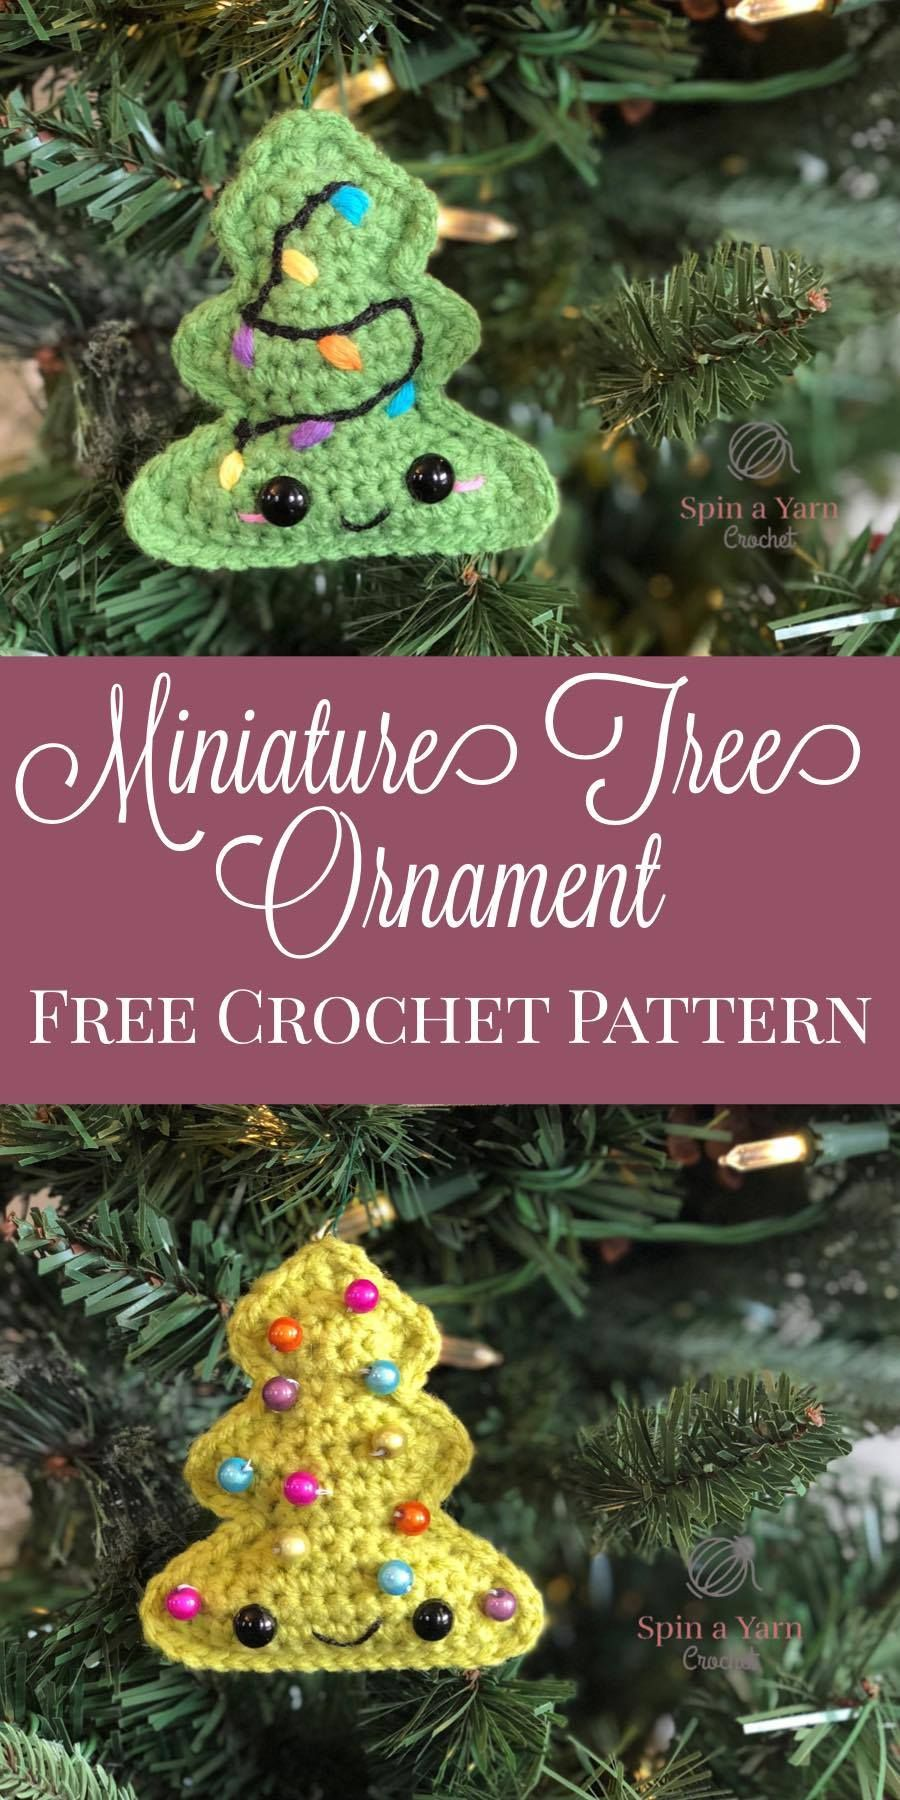 Miniature Tree Ornament - Spin a Yarn Crochet